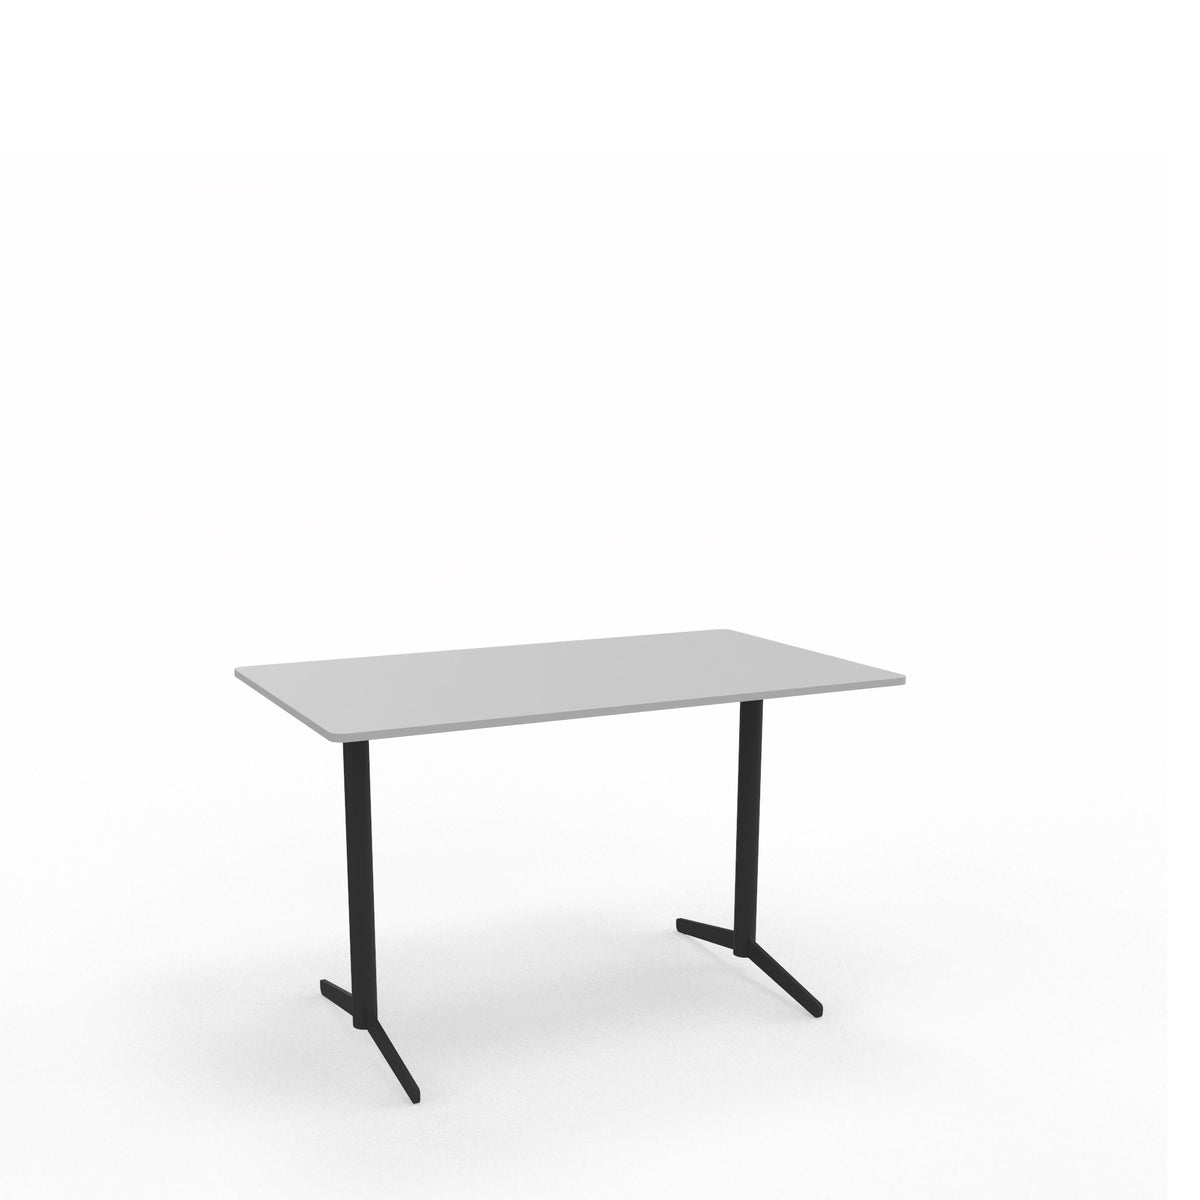 Edsbyn Office Feather Table Light Grey with Black Base